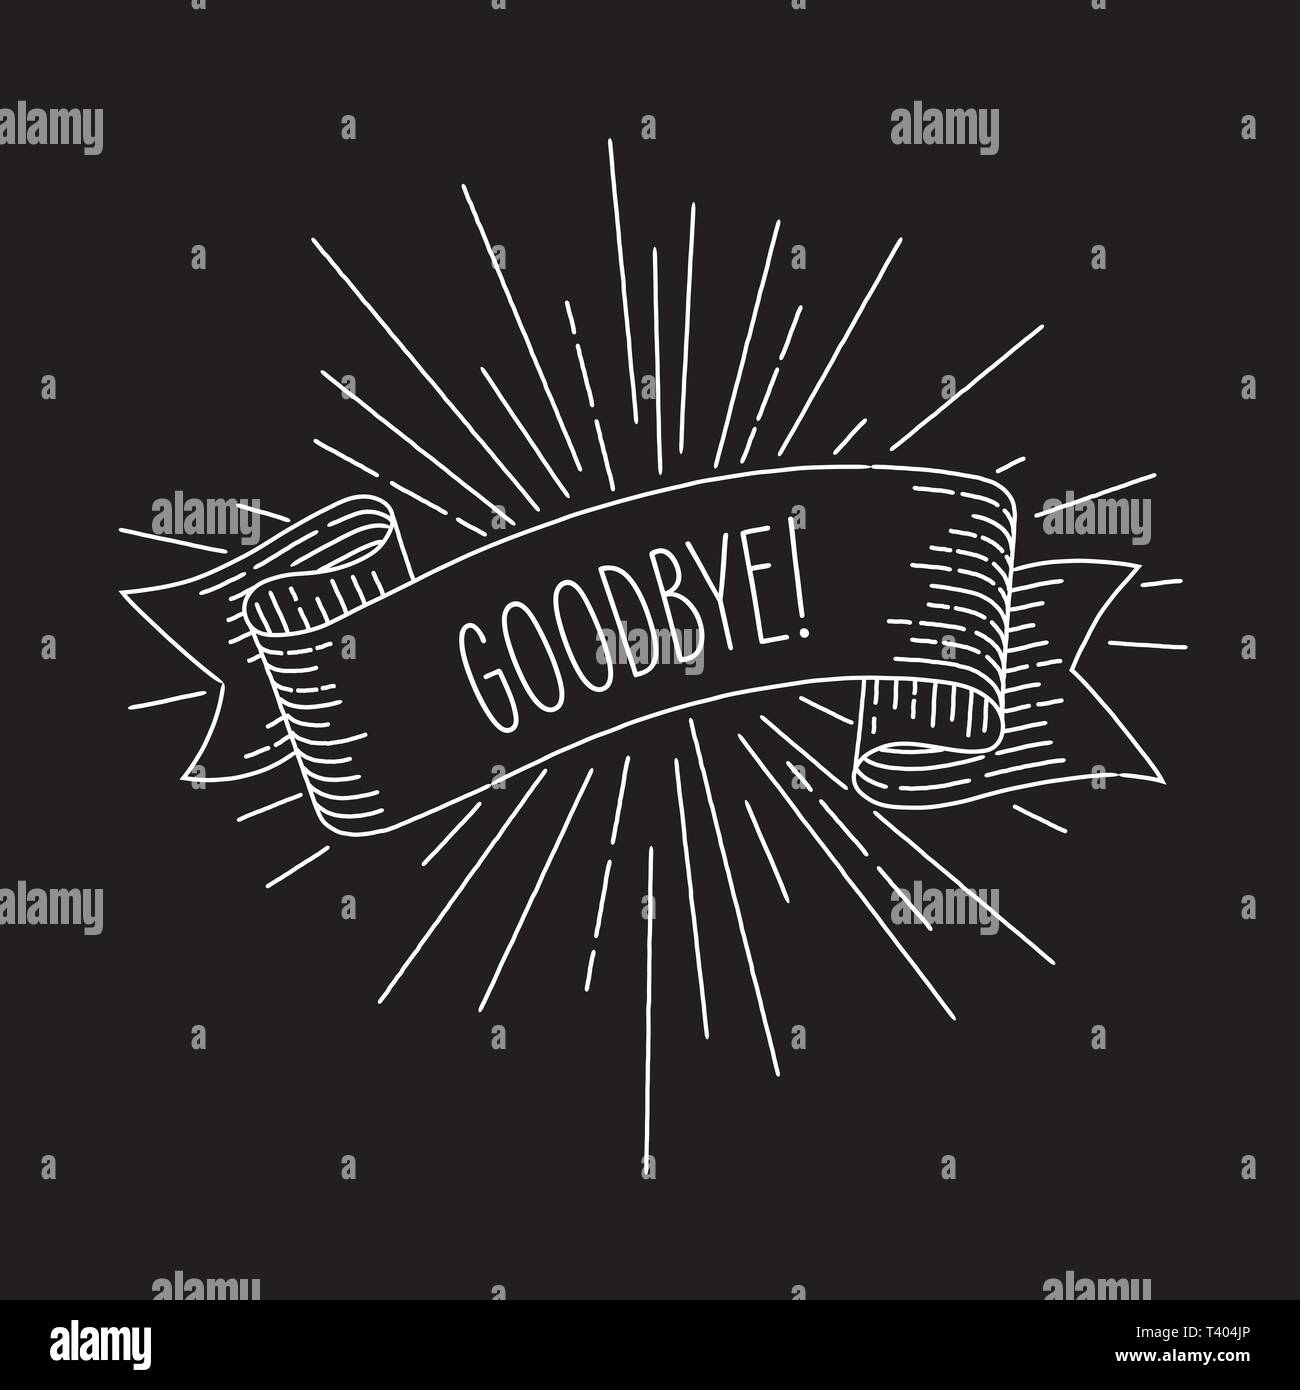 Goodbye banner. Ribbon banner design element in vintage look with word goodbye, engraving style graphic. Retro Vector Illustration. - Stock Image